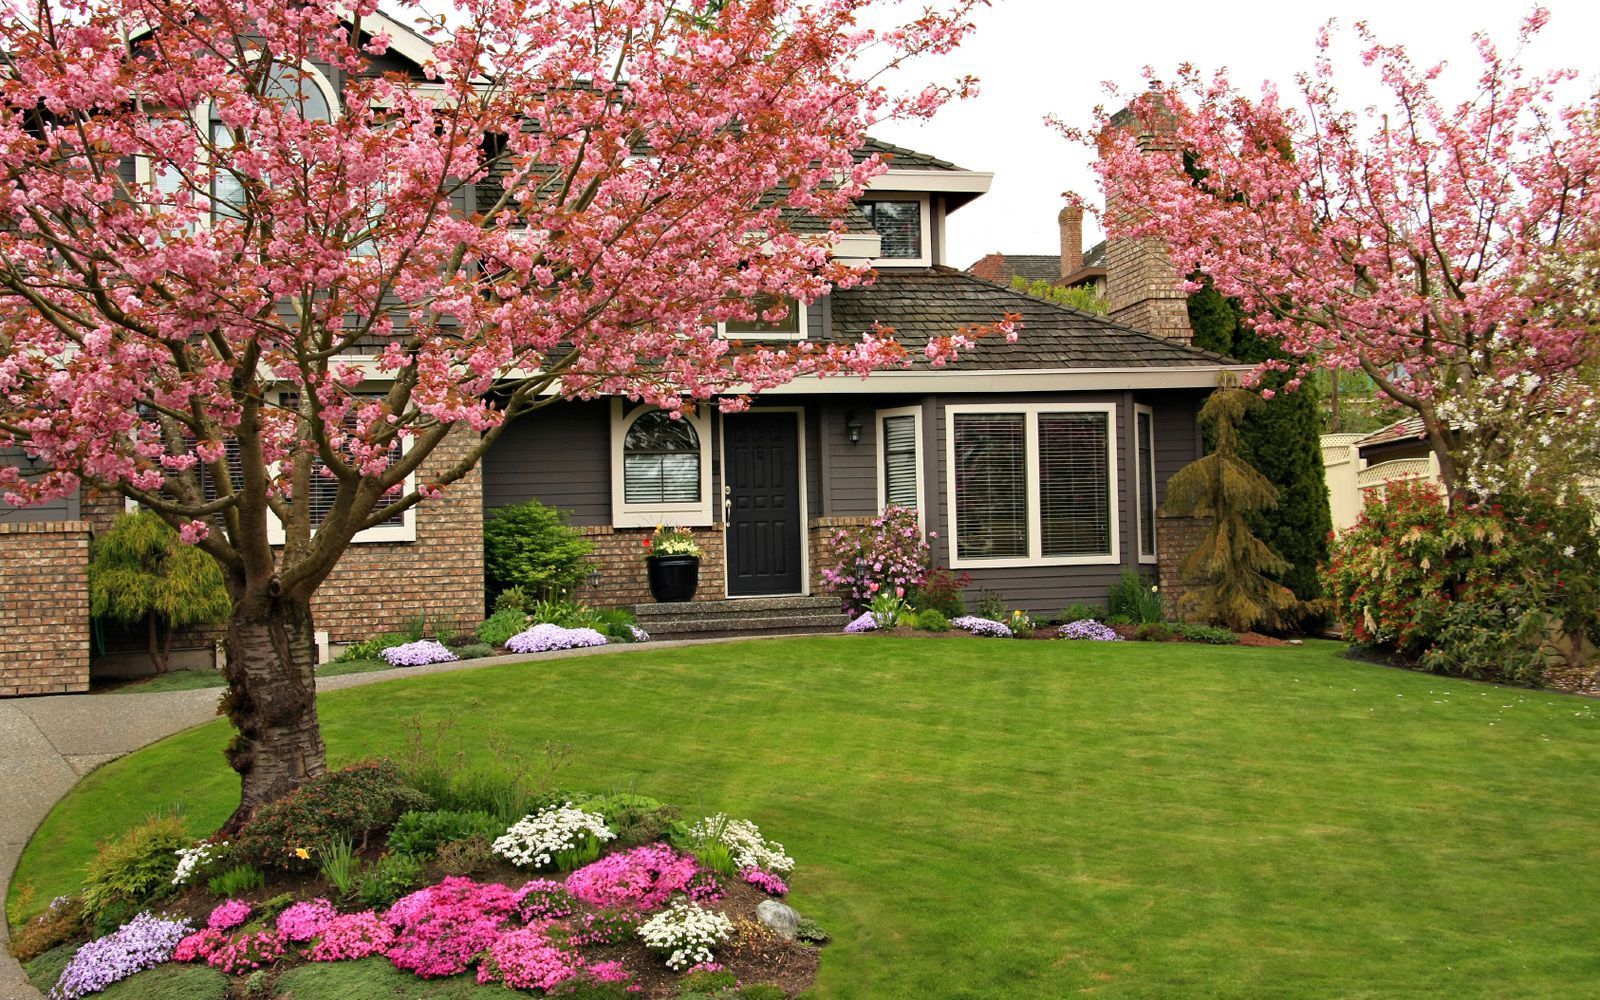 Curb Appeal Landscaping Ideas For A House With Flat Roof Artmakehome